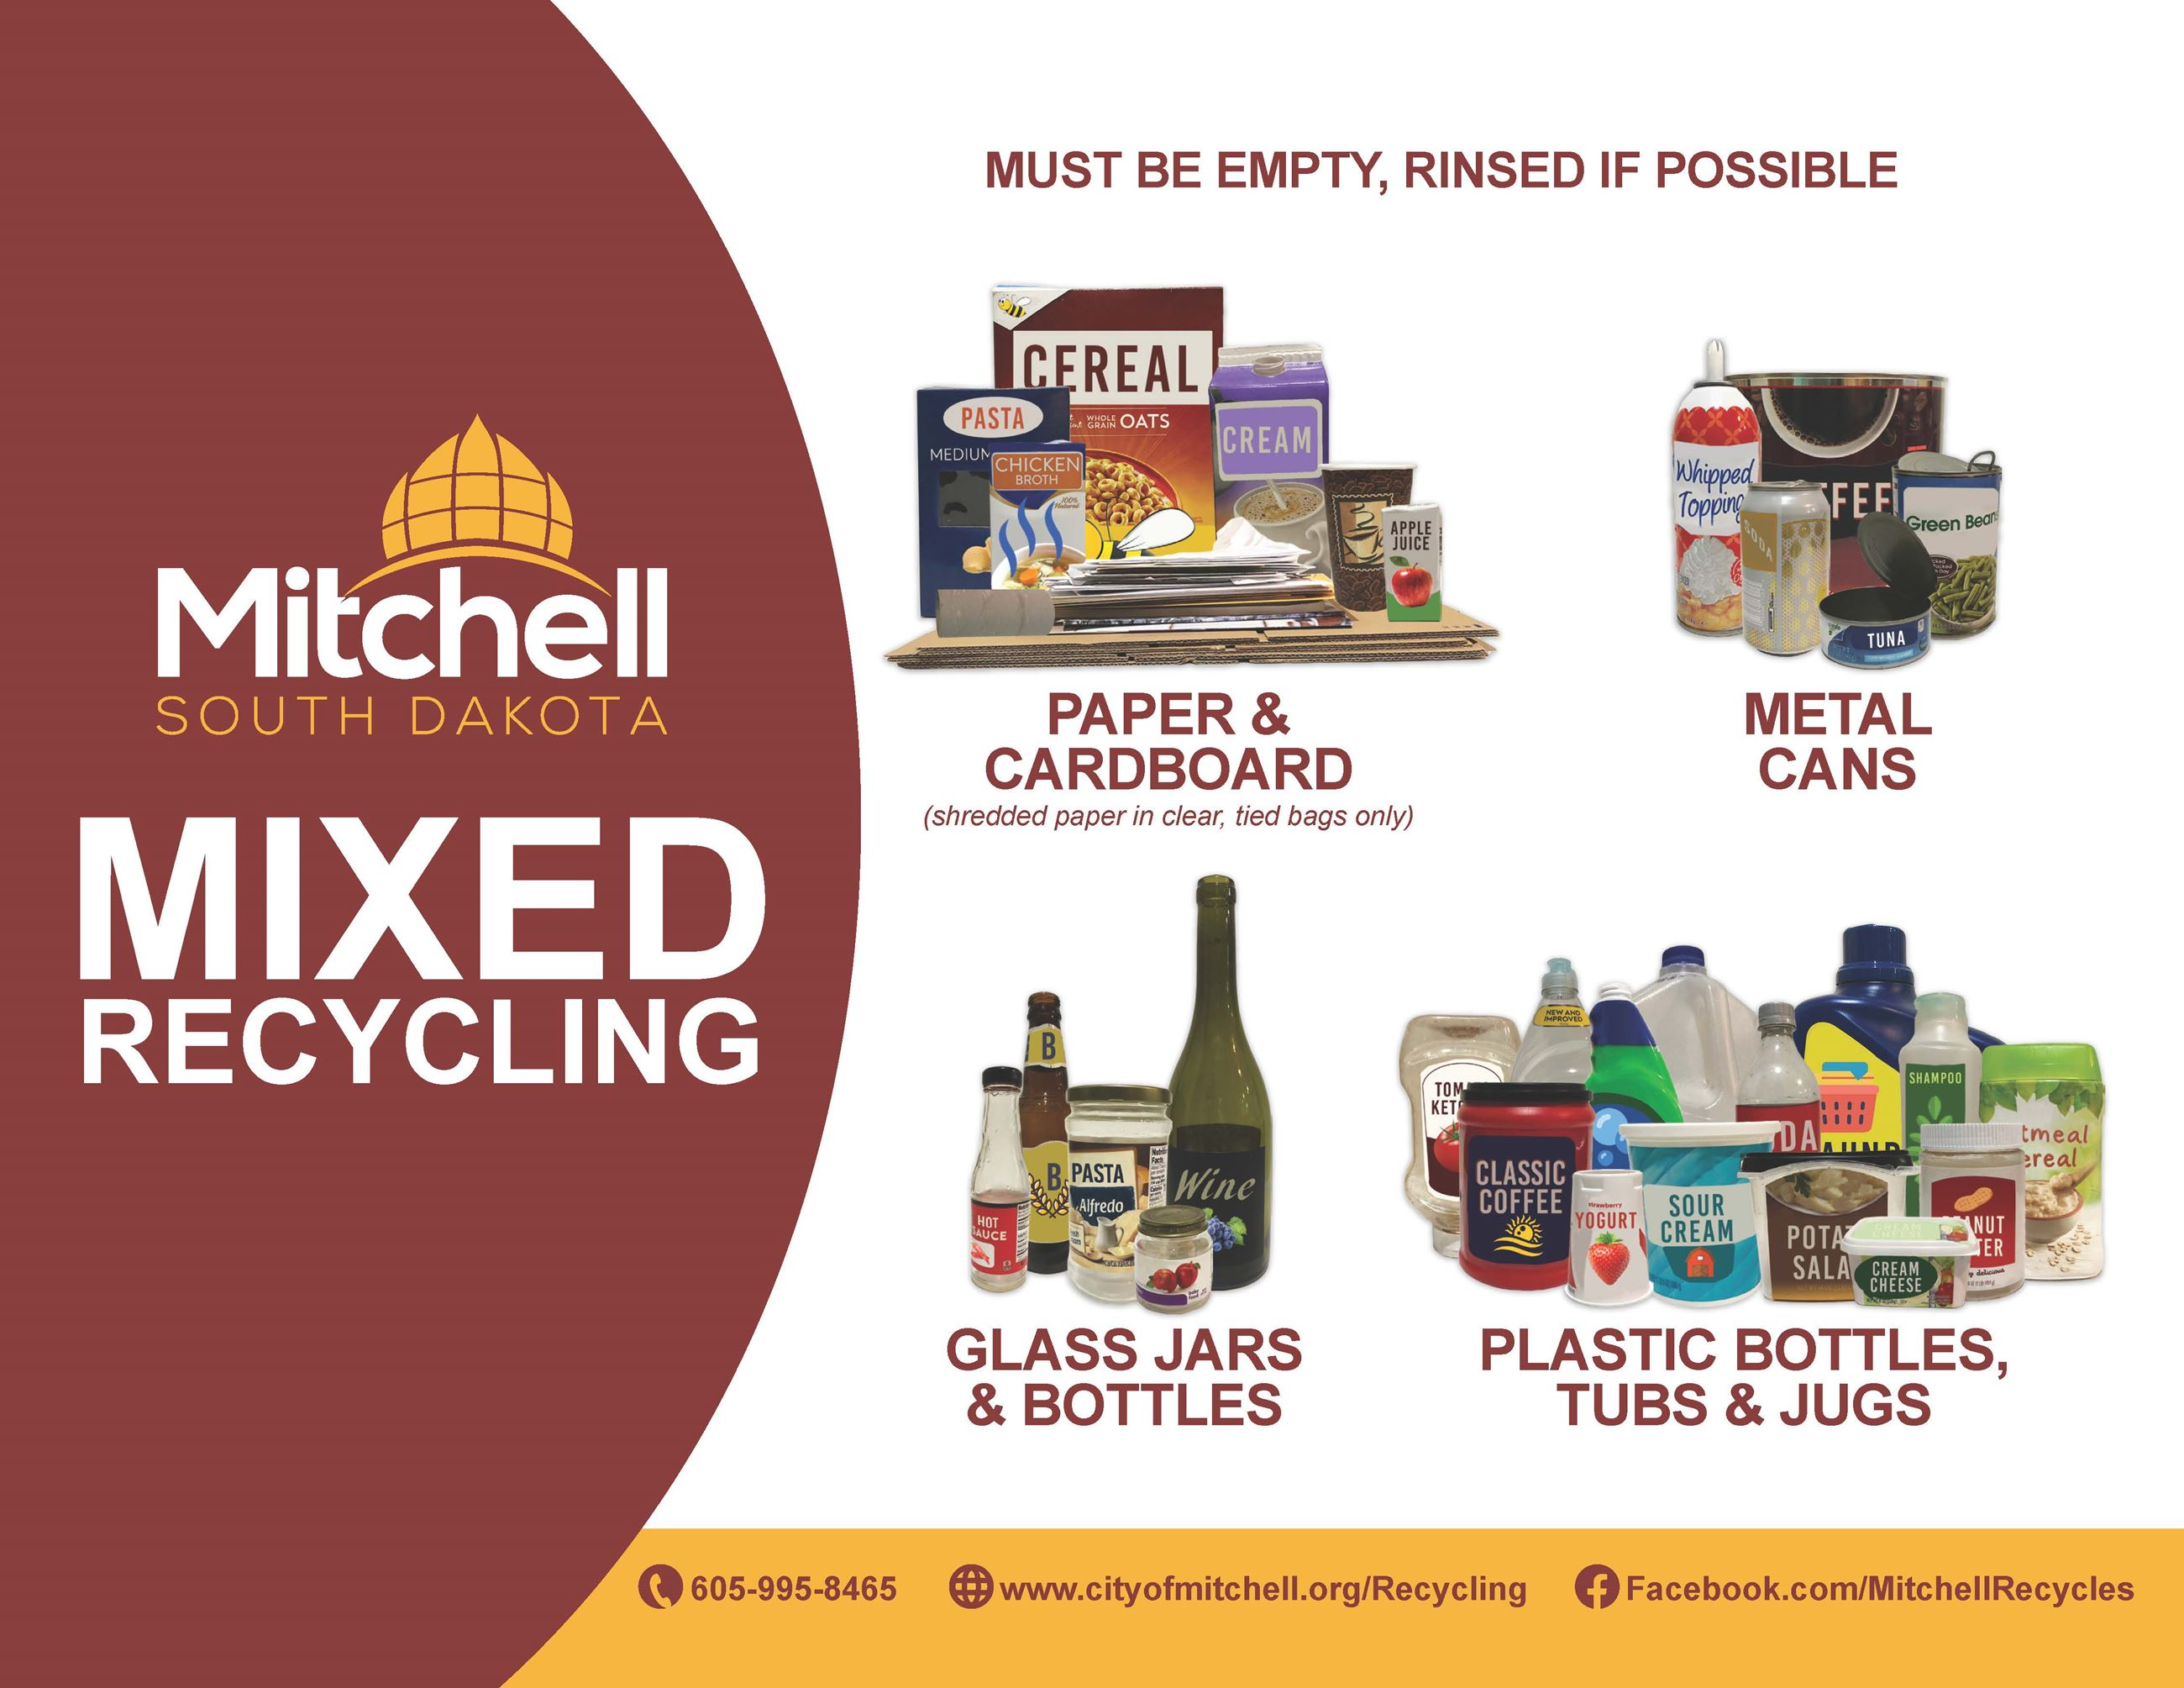 Mitchell Mixed Recycling Guide_Page_2